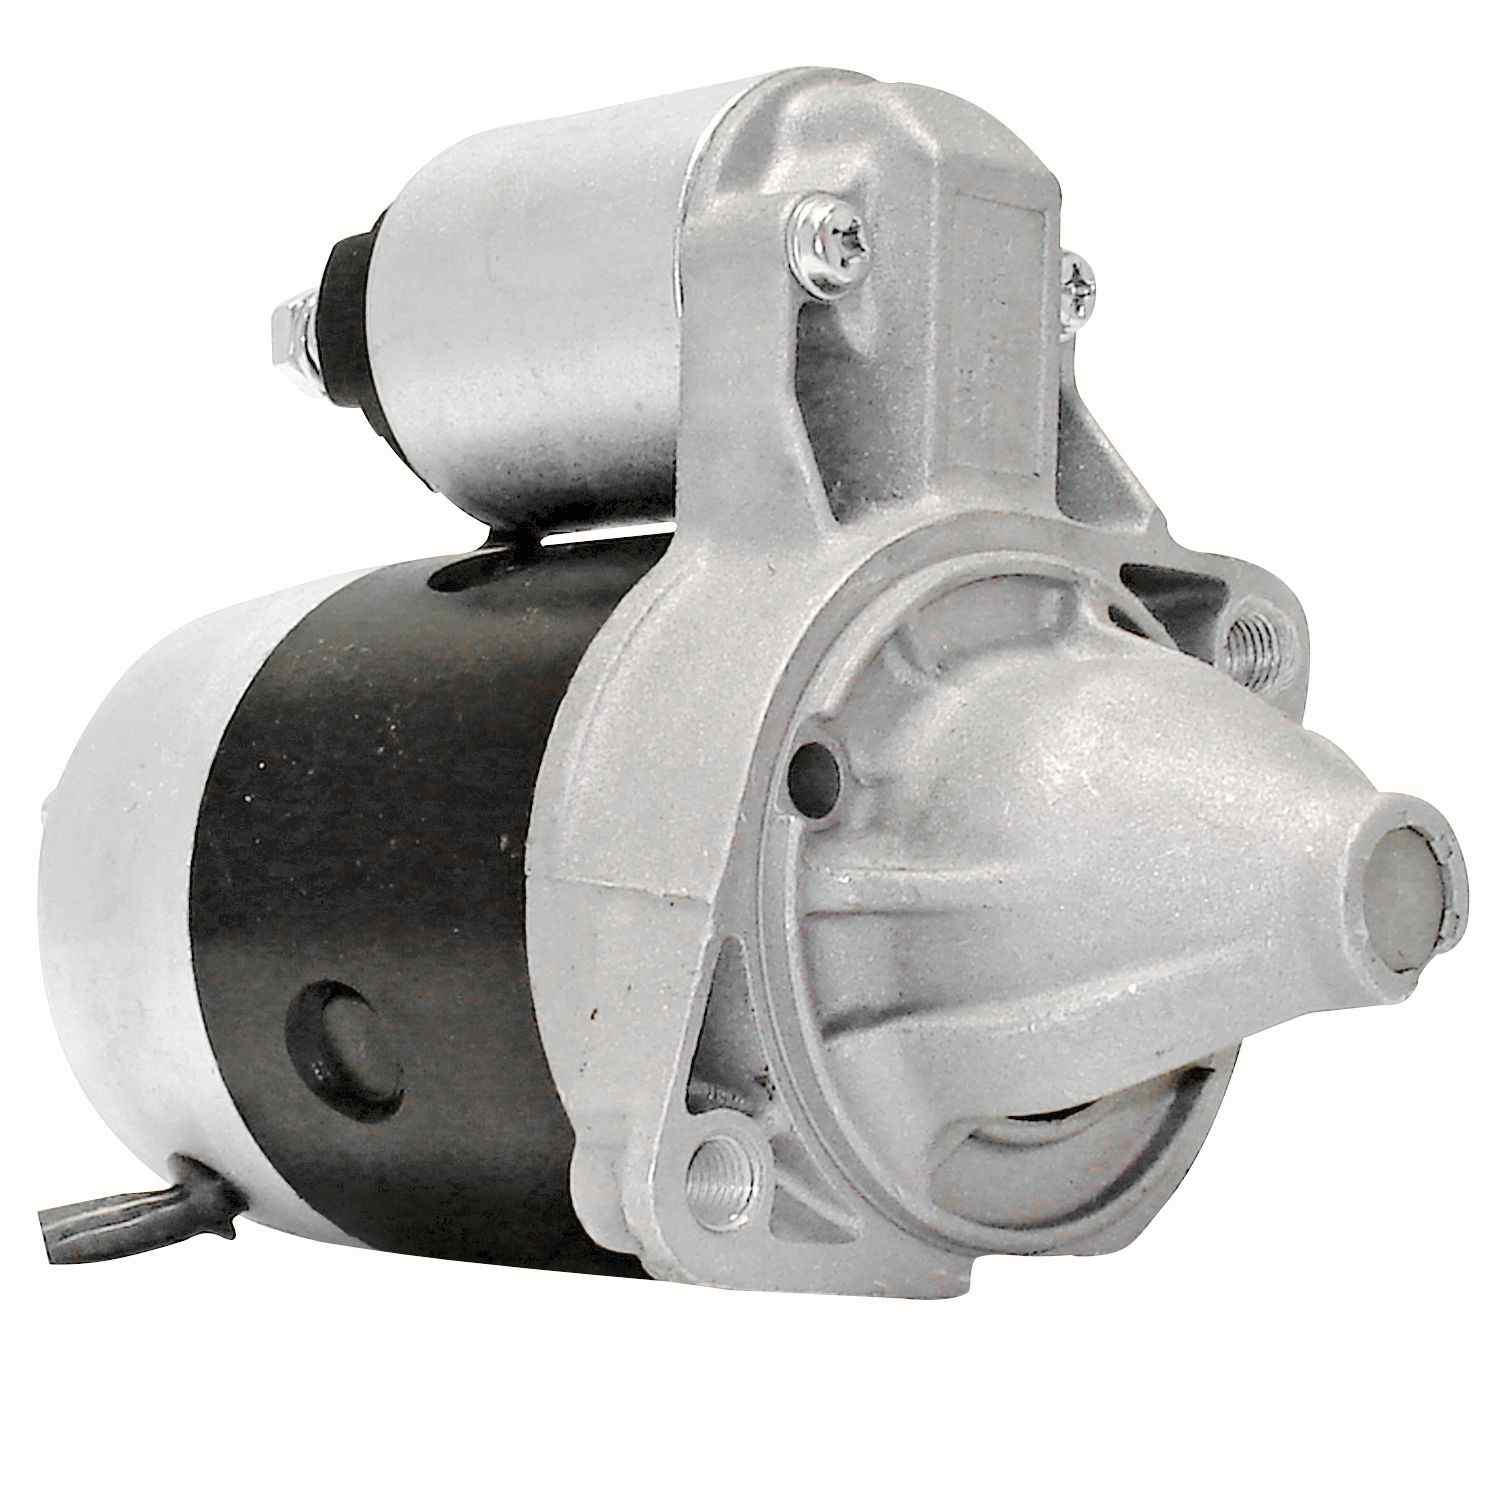 ACDELCO GOLD/PROFESSIONAL - Reman Starter Motor - DCC 336-1439